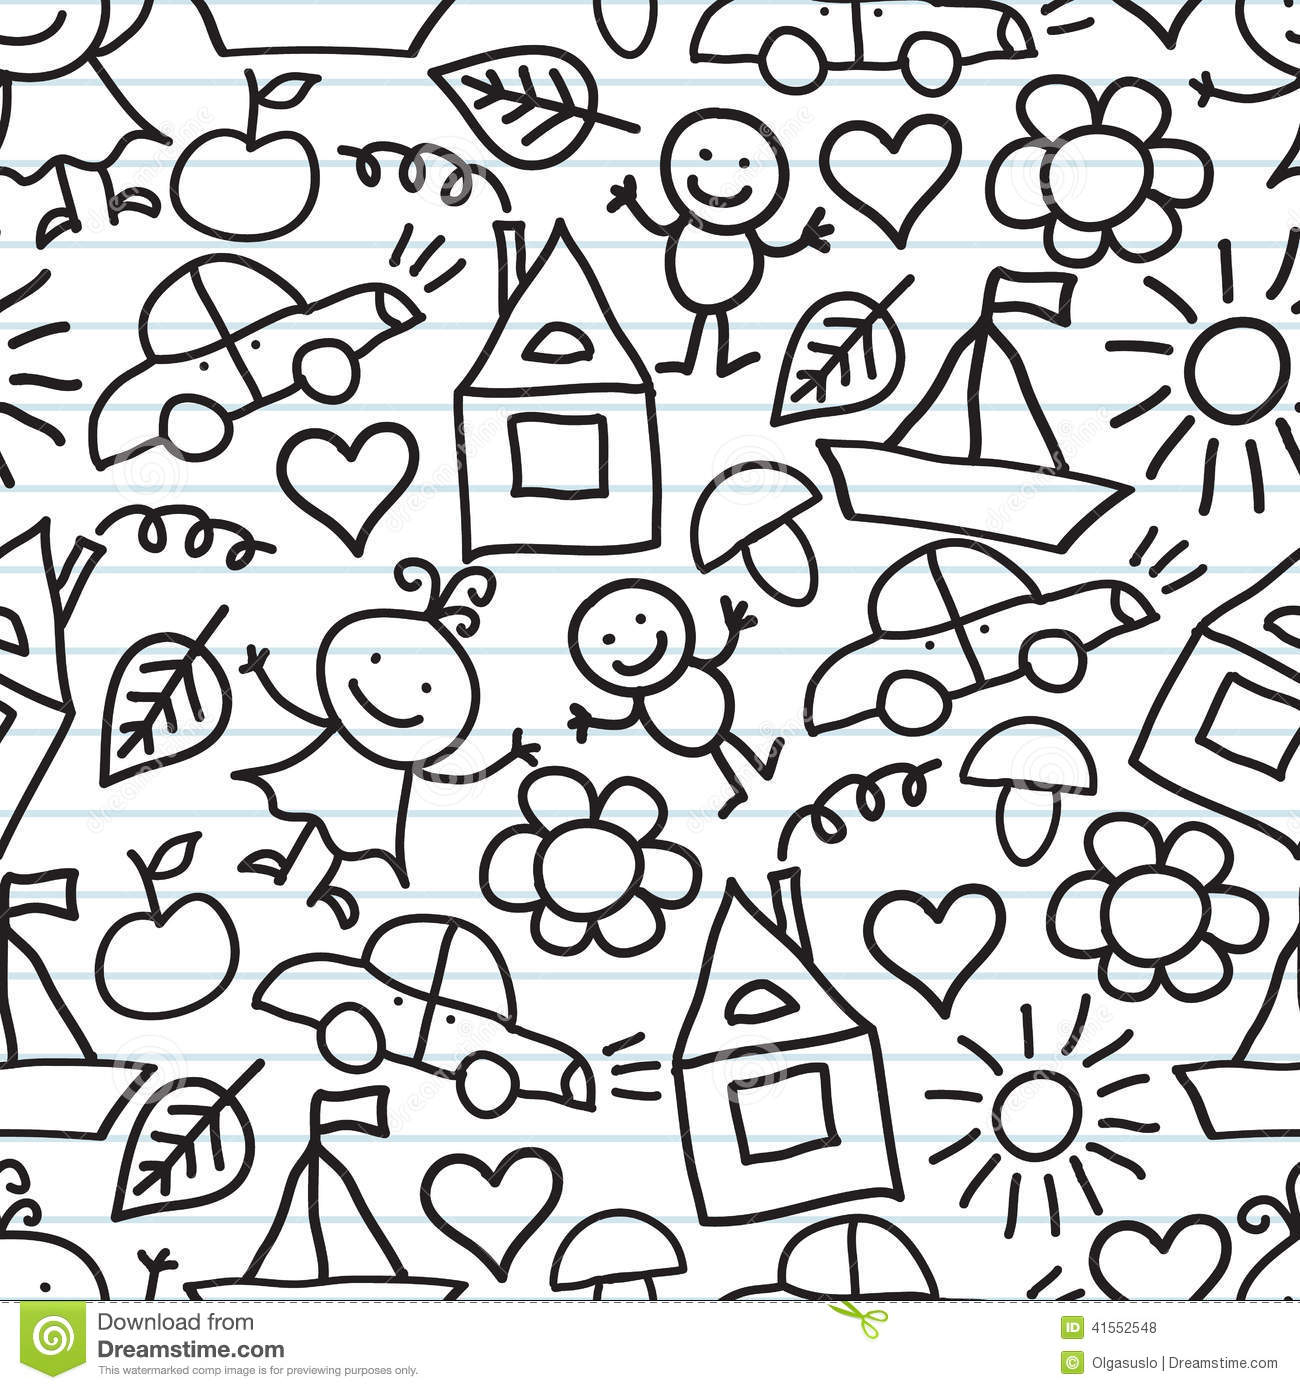 childrens drawings doodle background stock illustration